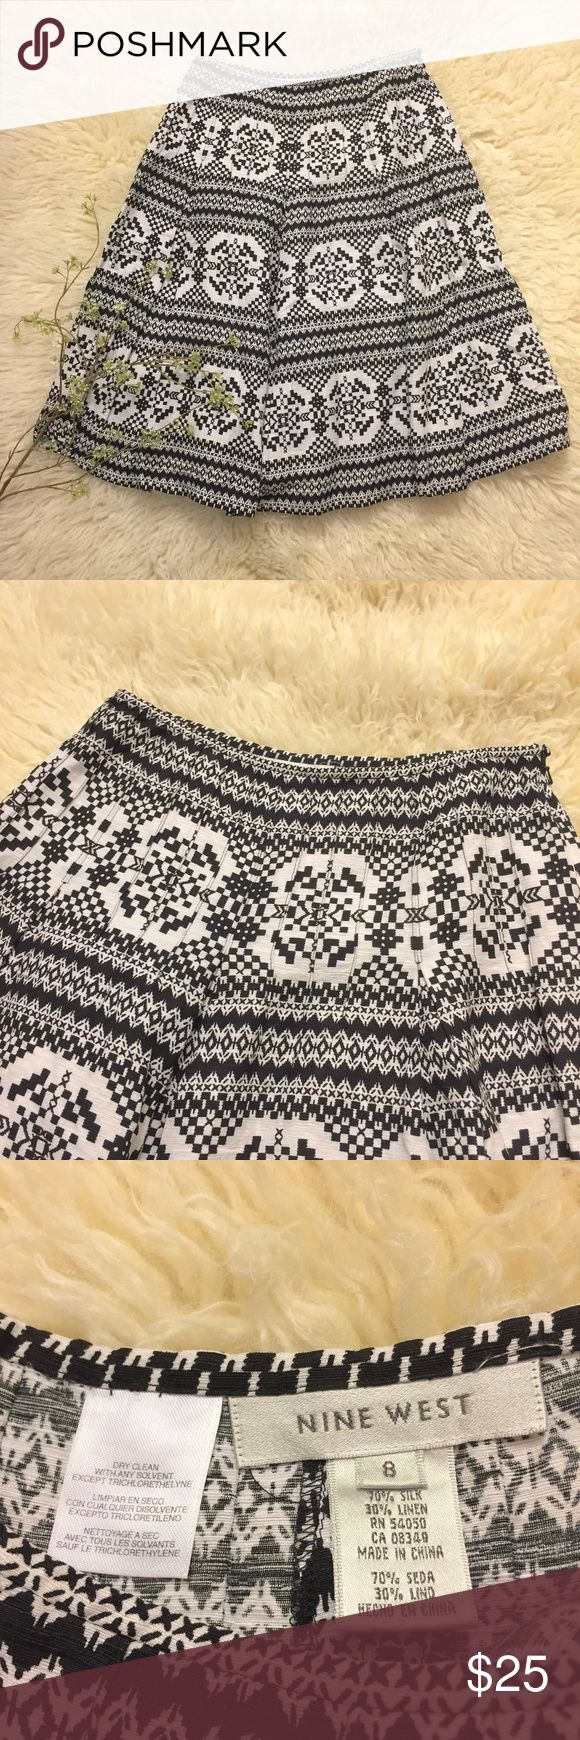 Nine West Silk-Linen Blend Tapestry Skirt Just gorgeous - nine west skirt with small pleats, tapestry fabric (looking - not as heavy!), side zip. marked size 8. See pics for measurements. Lovely shape with no stains, rips or holes. Gently used. Nine West Skirts A-Line or Full